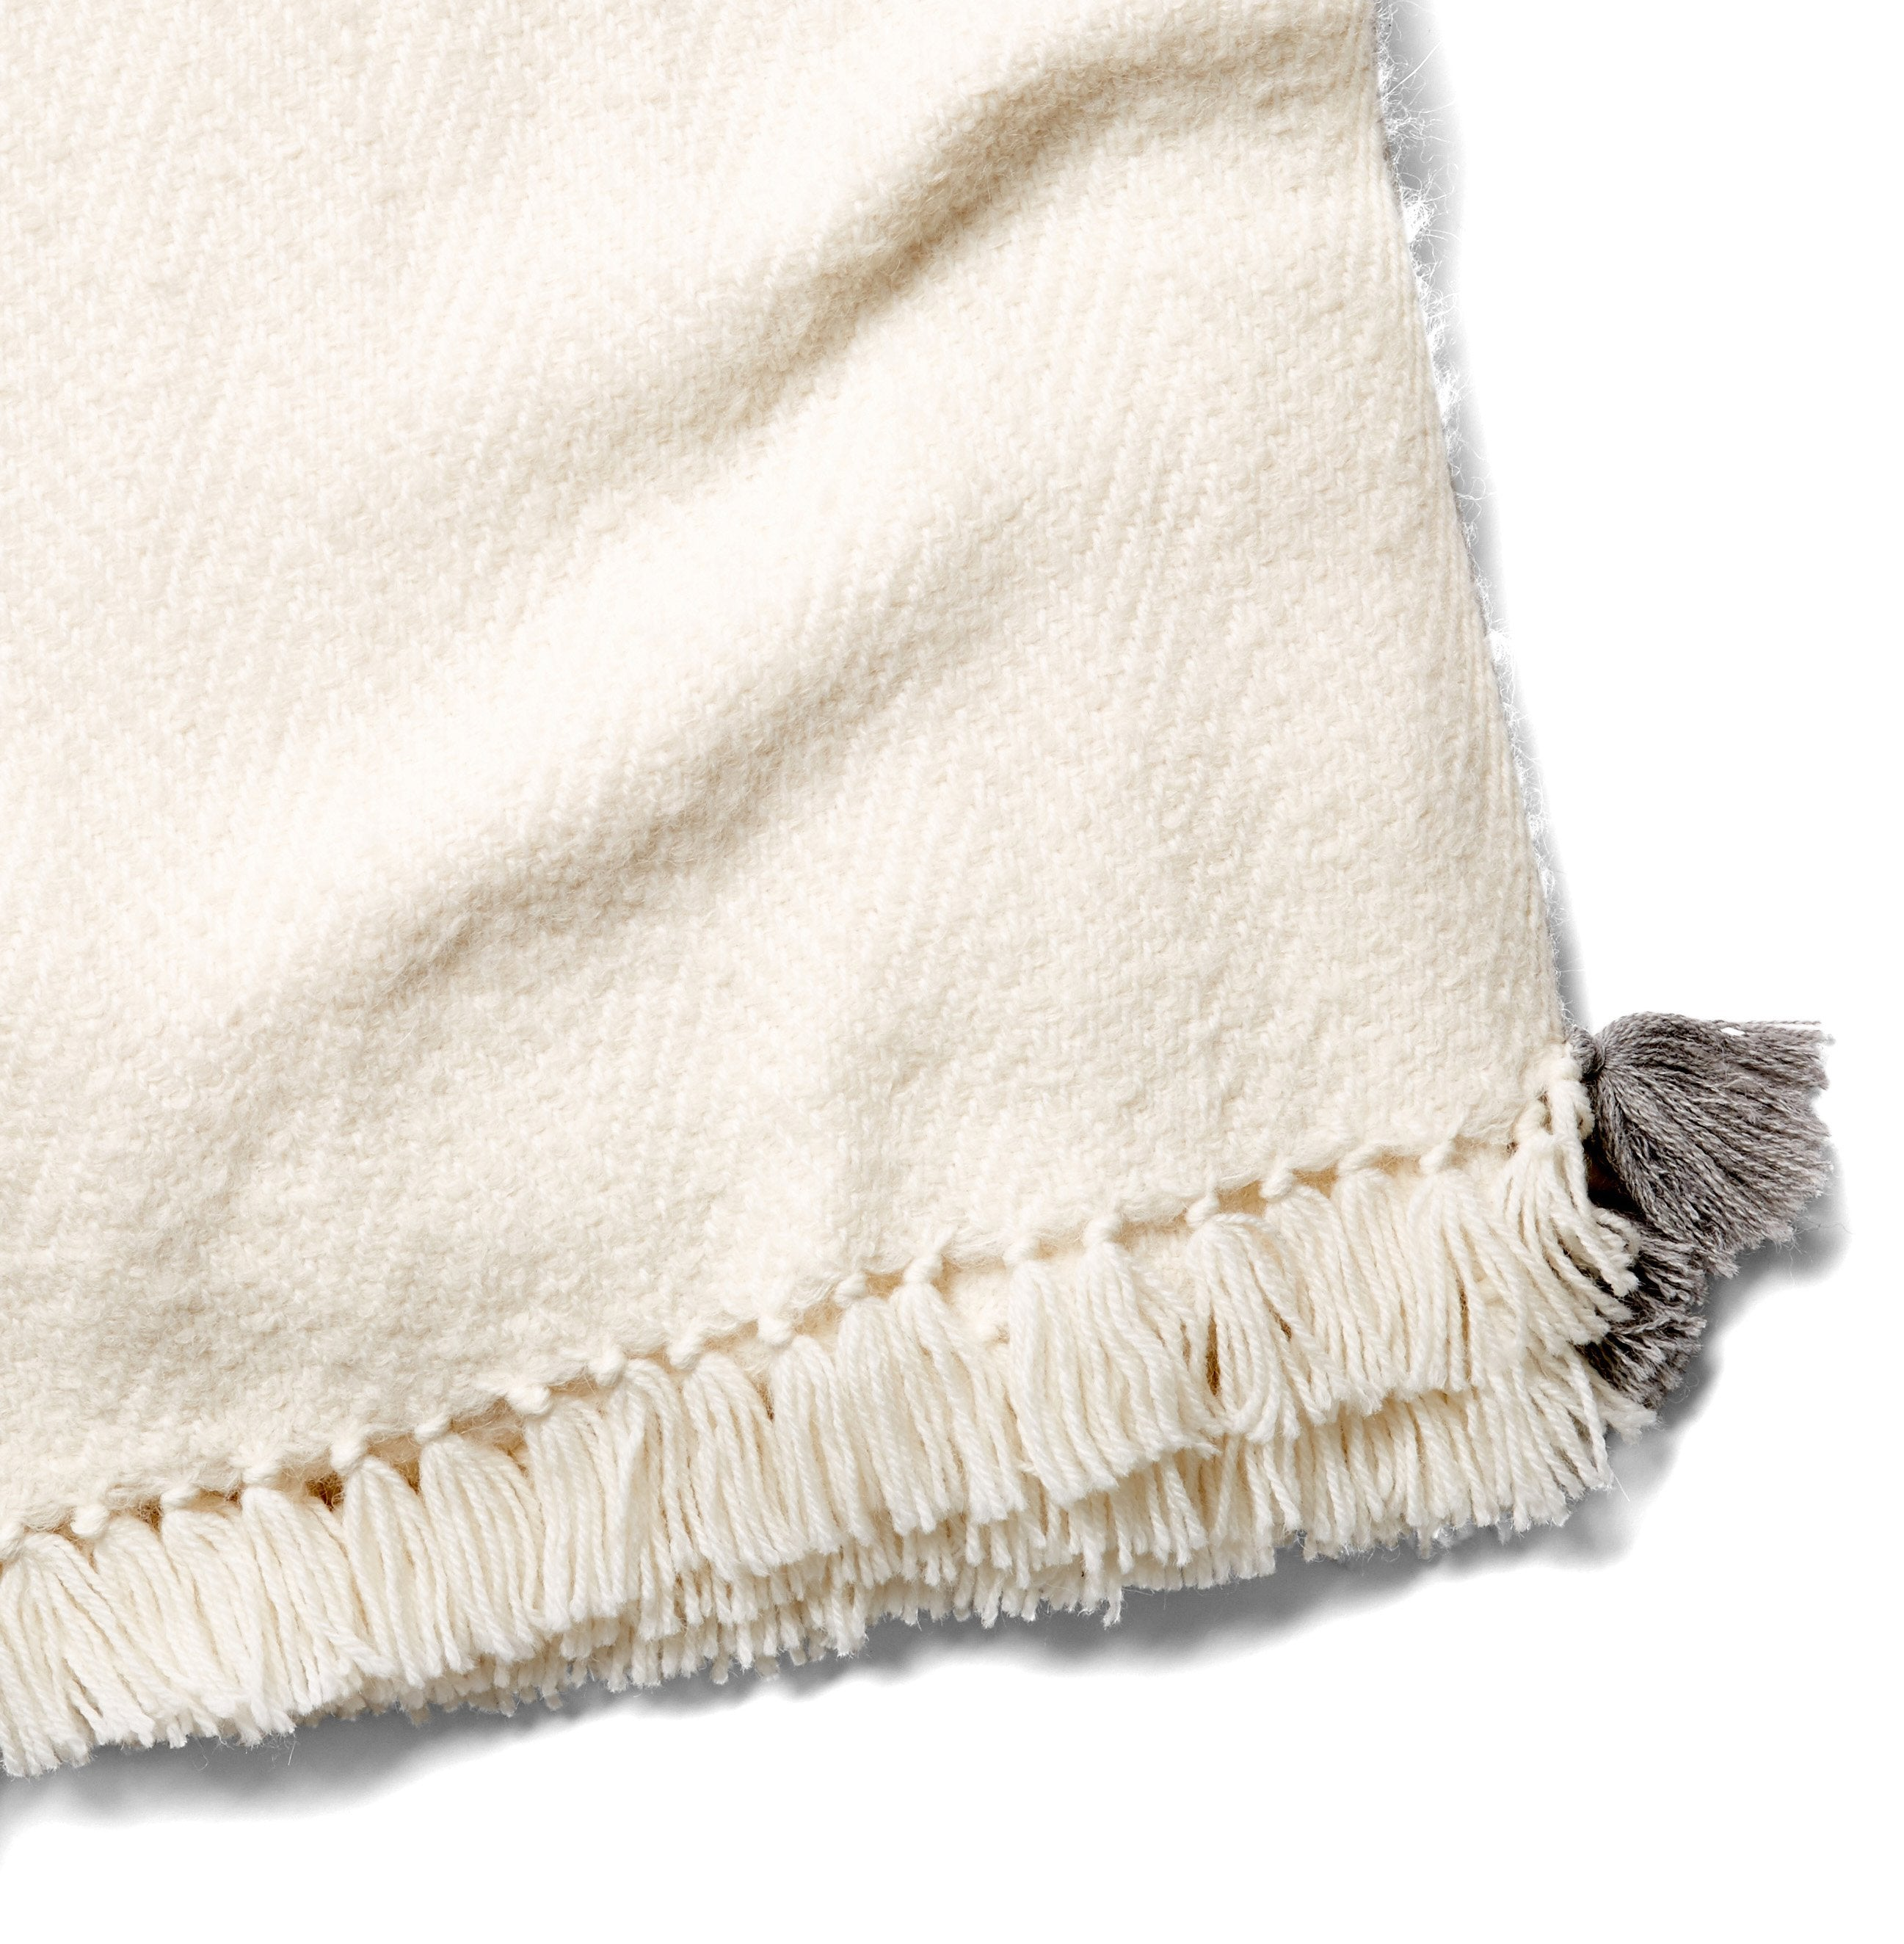 Tuktu Woven Alpaca Wool Throw - Sefte